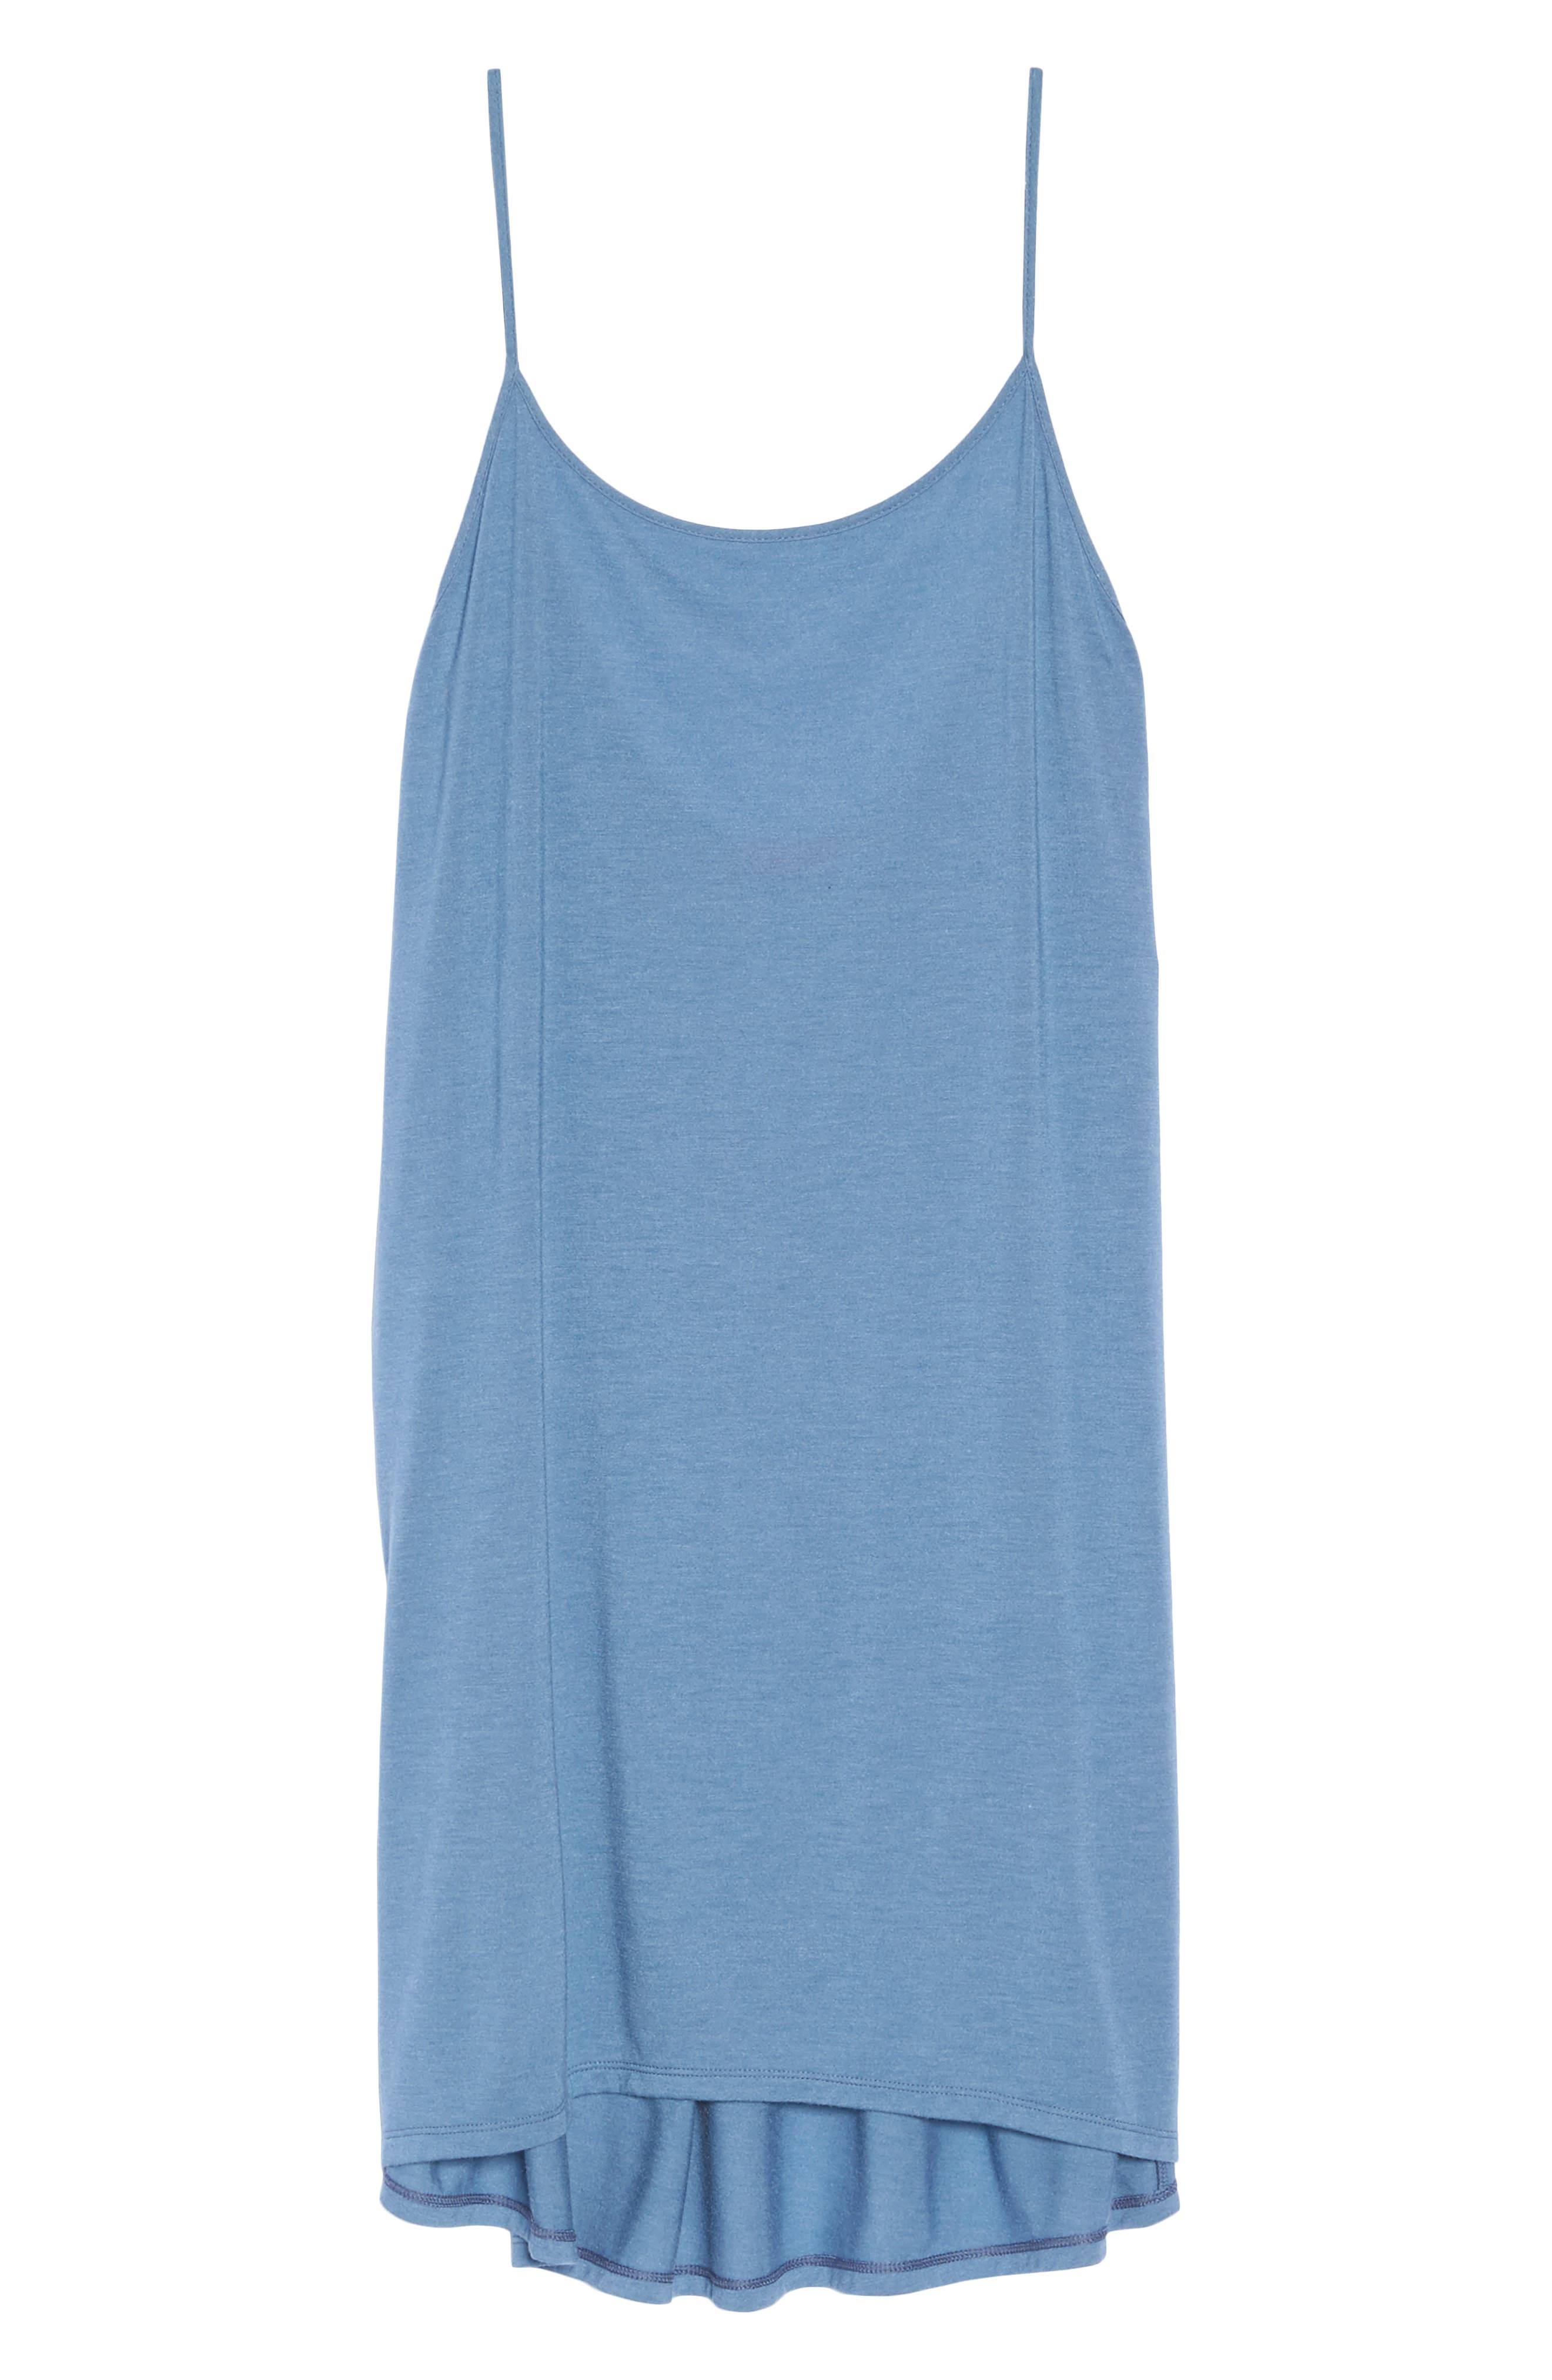 Heather Tees Chemise,                             Alternate thumbnail 6, color,                             Bsq Ht Blue Shadow